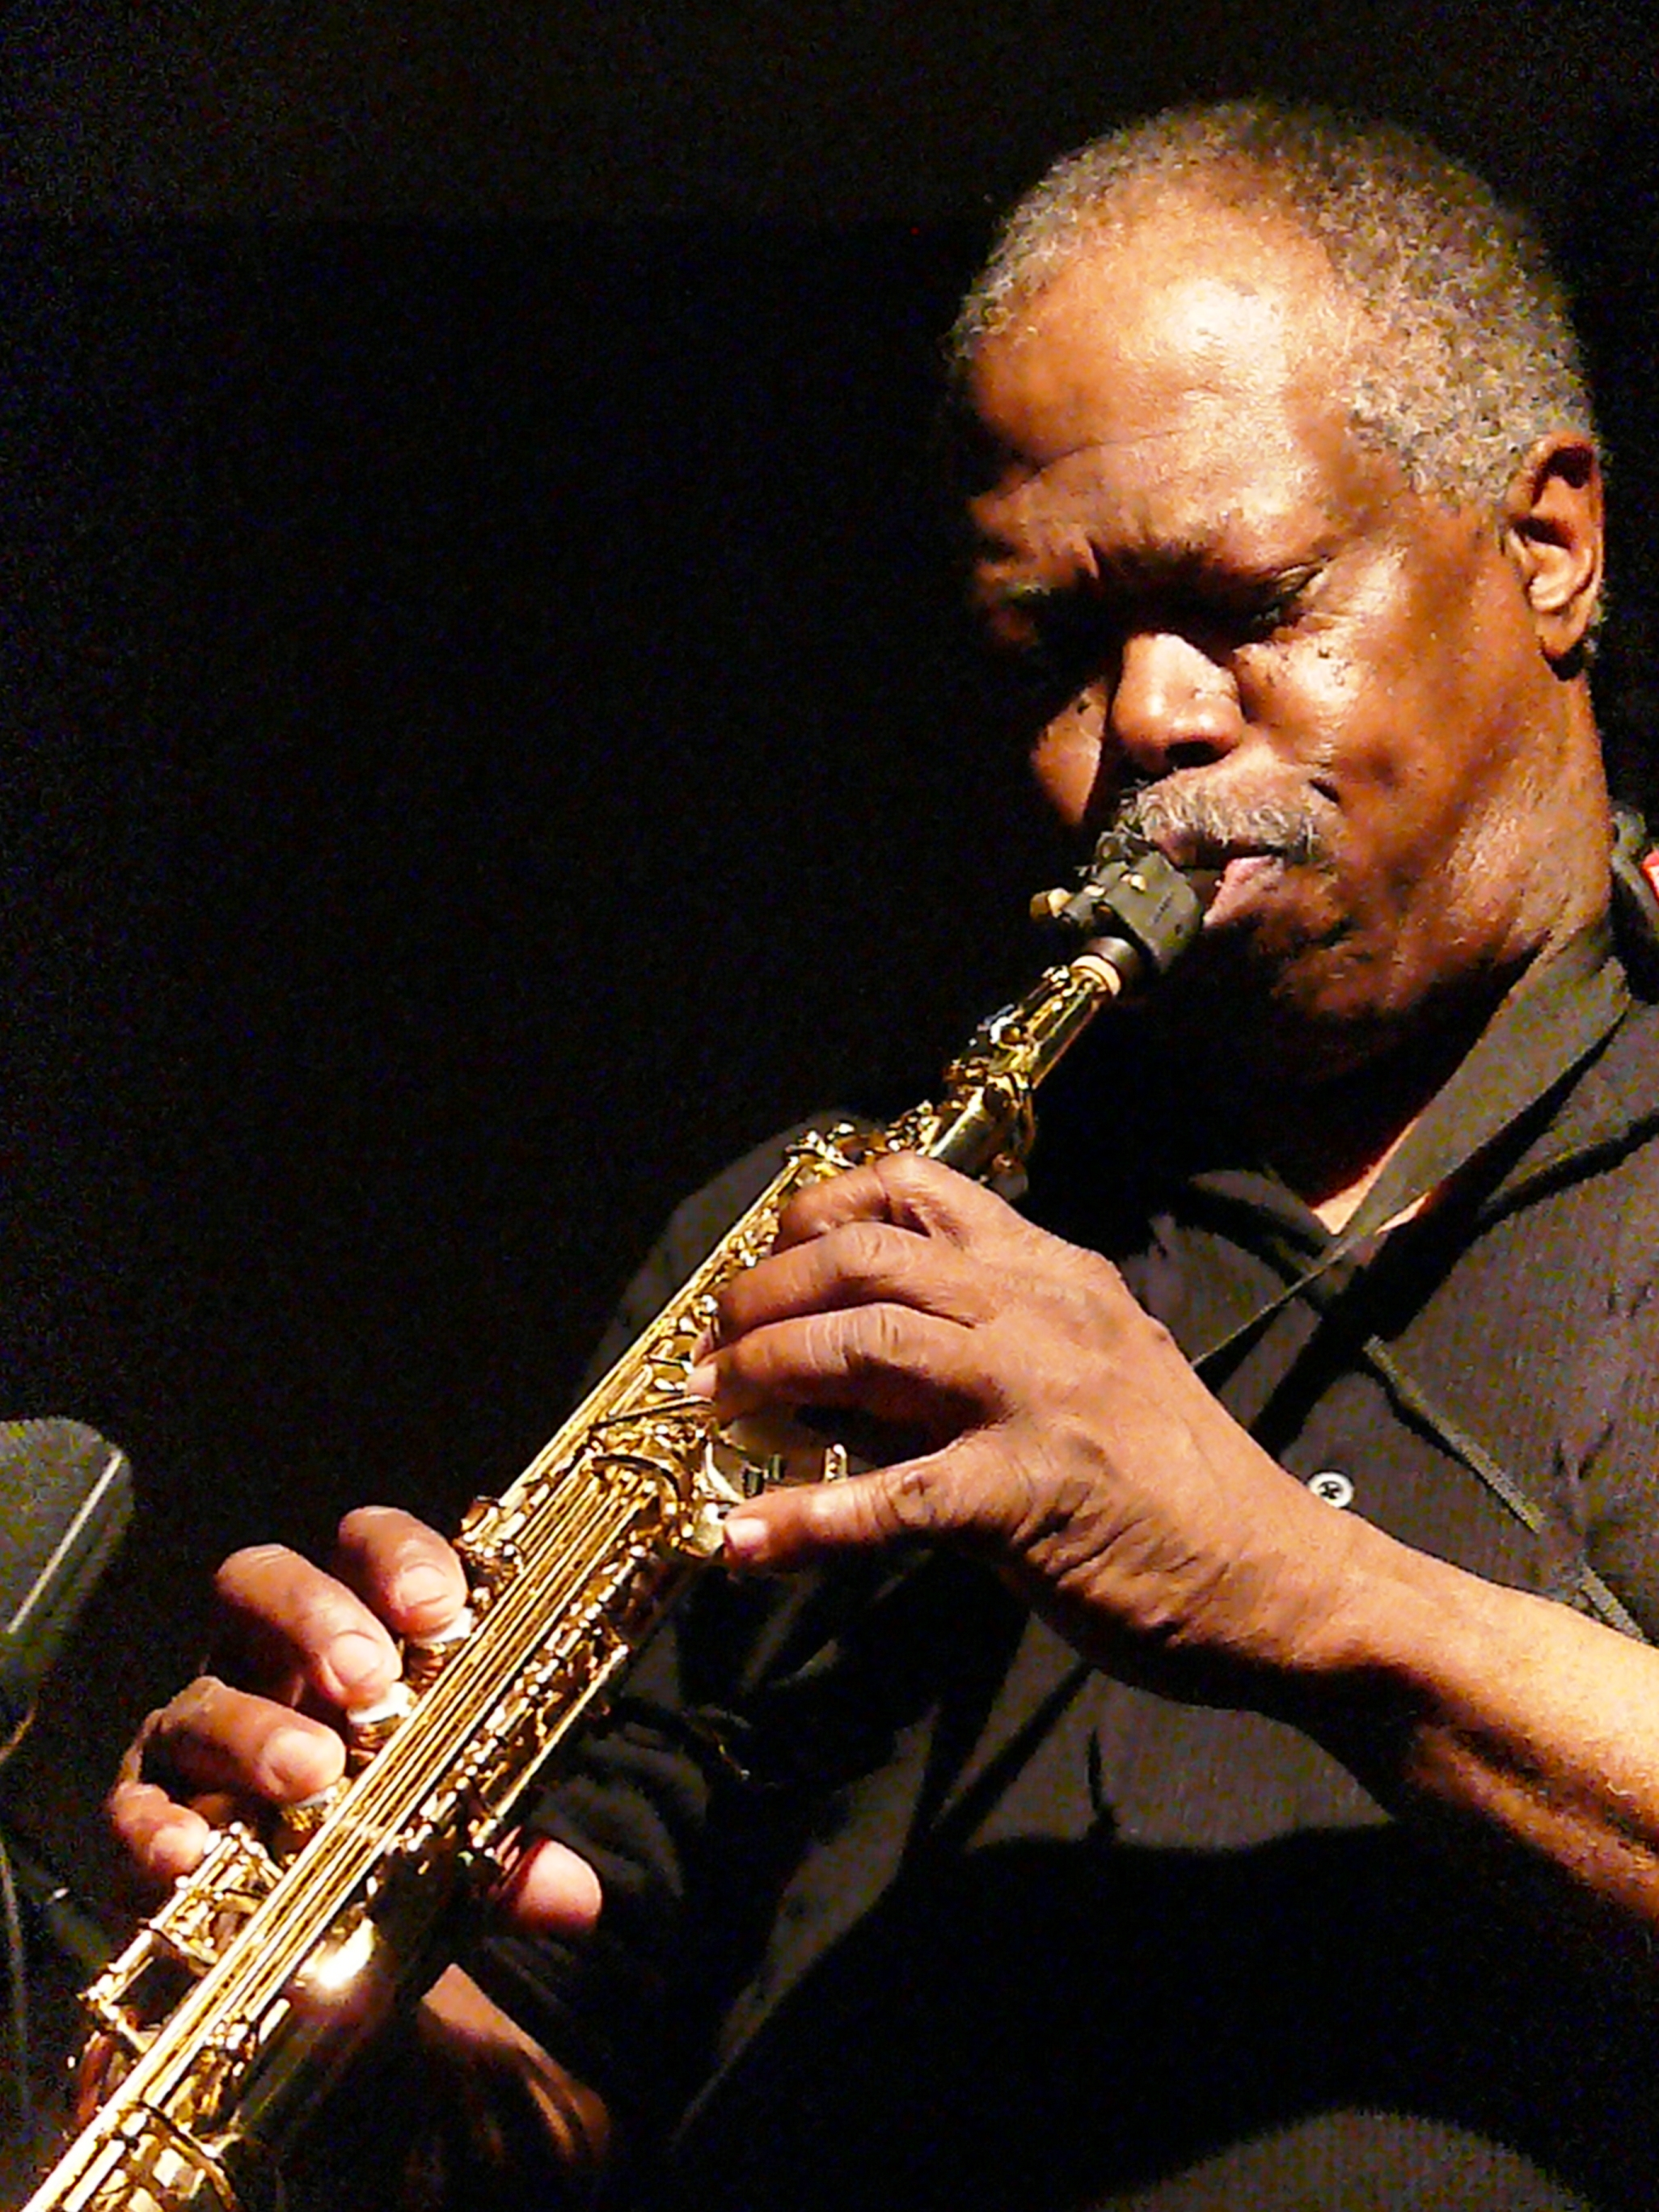 Joe McPhee at Cafe Oto, London in March 2012